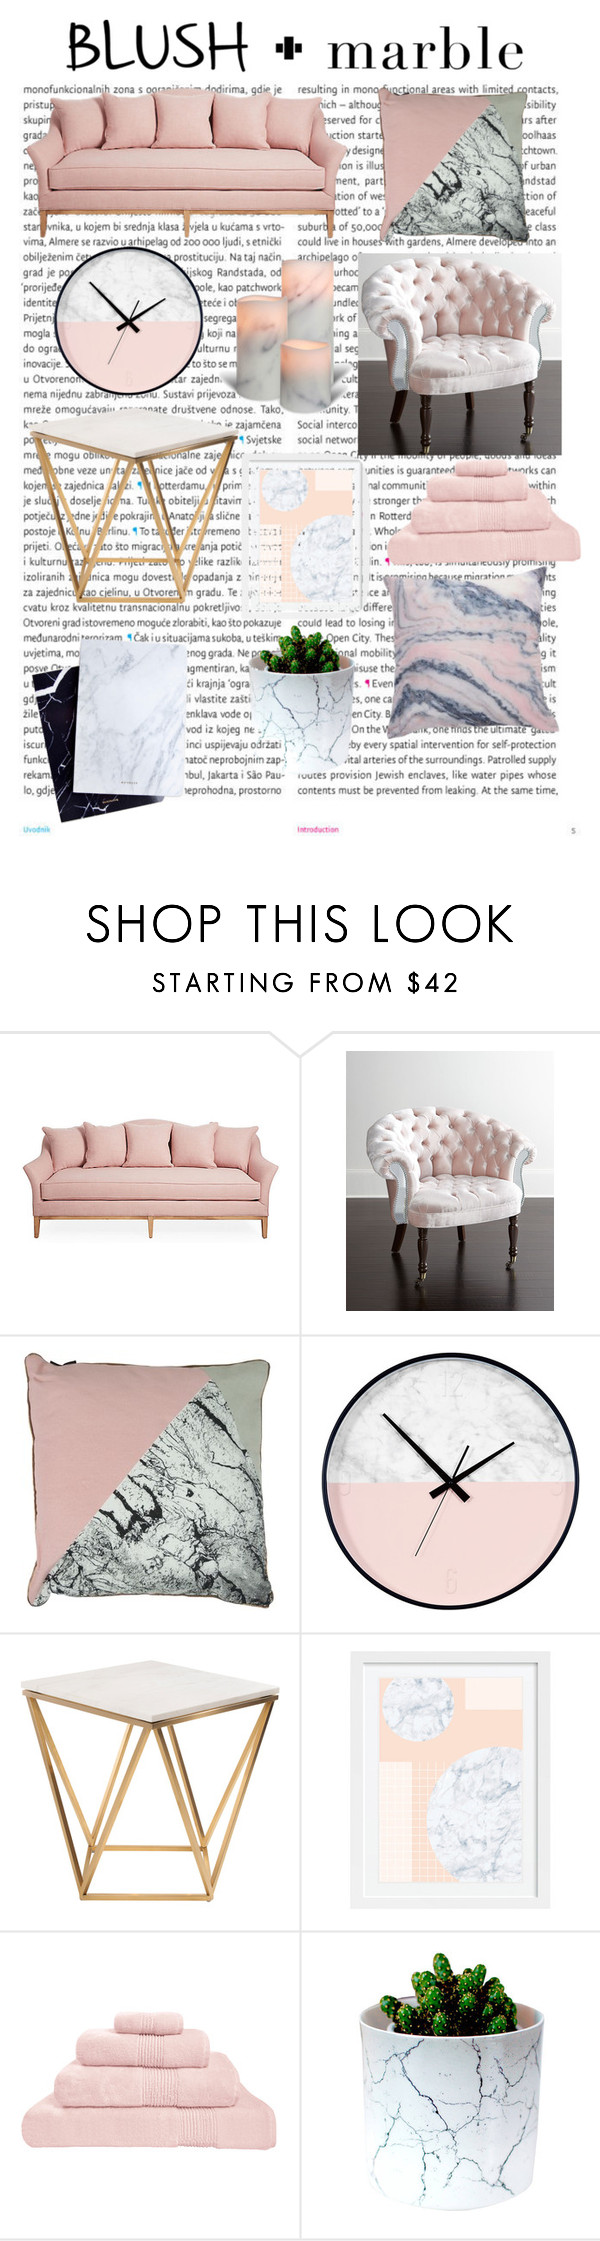 """Blush + Marble"" by emmajxnke ❤ liked on Polyvore featuring interior, interiors, interior design, home, home decor, interior decorating, Oris, Haute House, Nuevo and Hamam"